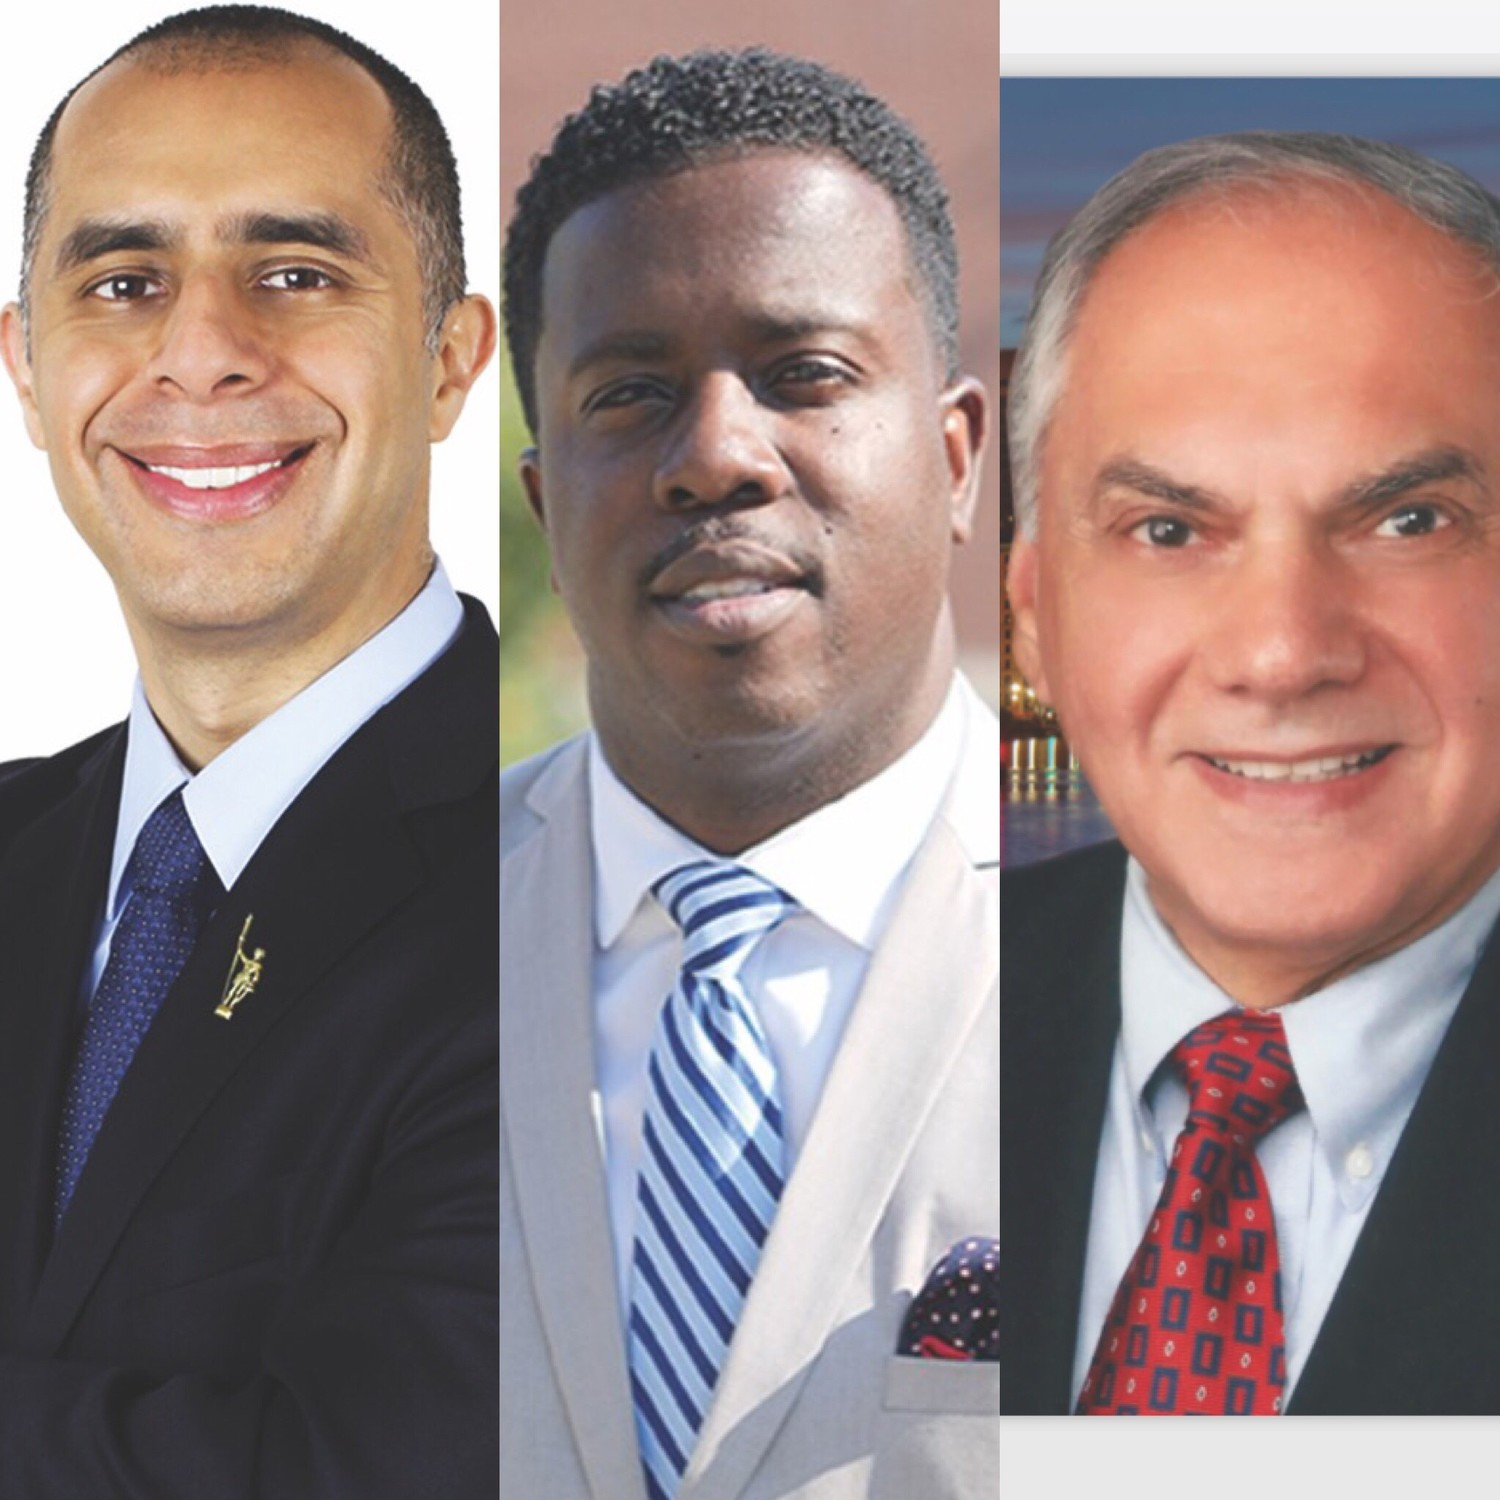 Meet the candidates in the Democratic Mayoral Primary: Jorge Elorza, Kobi Dennis, Robert Derobbio